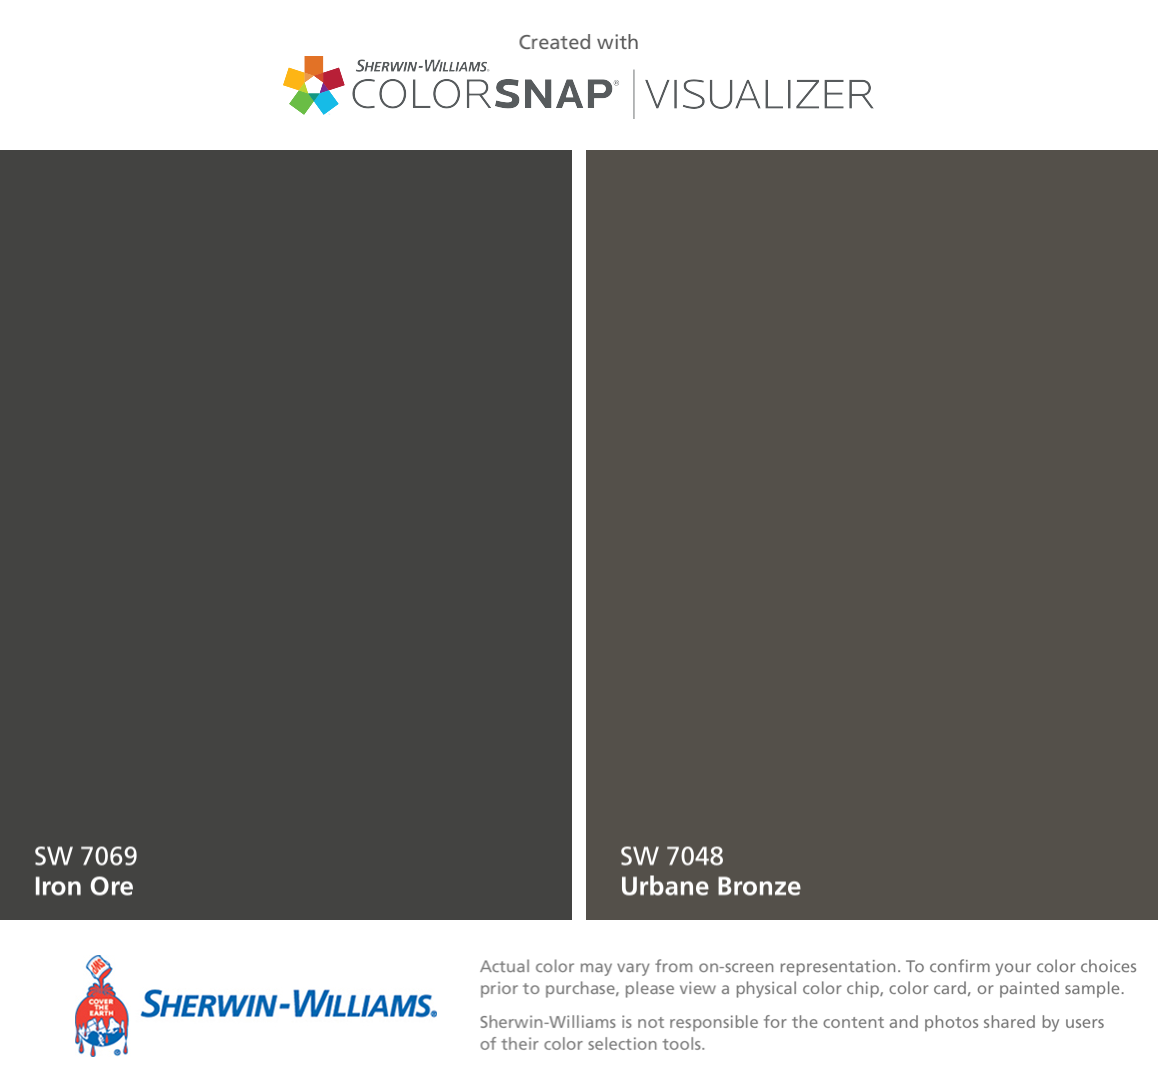 Found These Colors Colorsnap Visualizer For Iphone Sherwin Williams Iron Ore